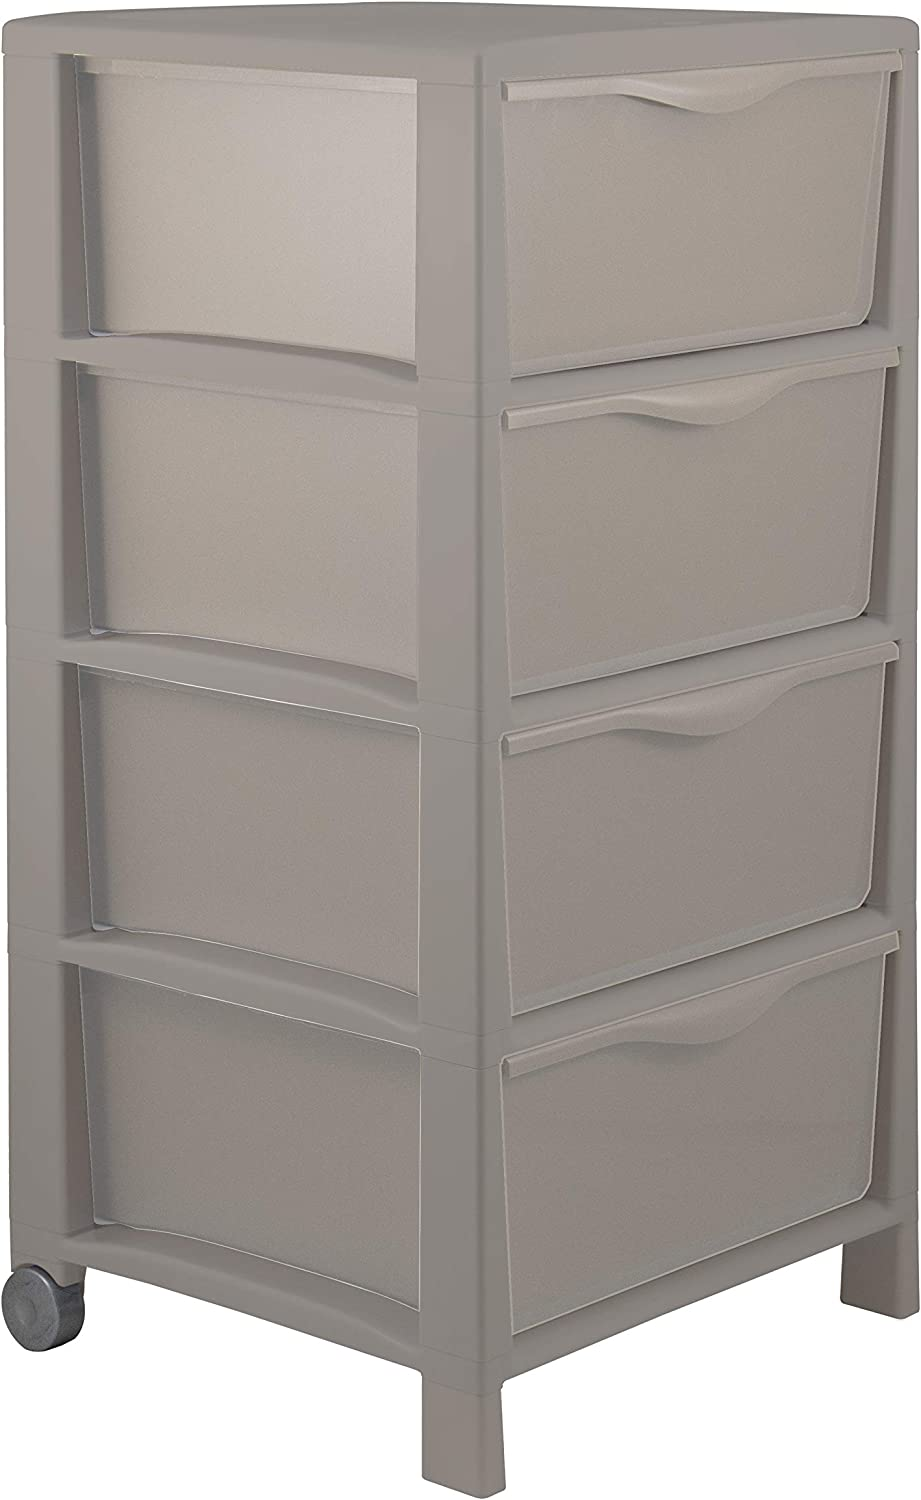 BEAUTIFUL AND FORTI Chest of drawers Grande Mocha